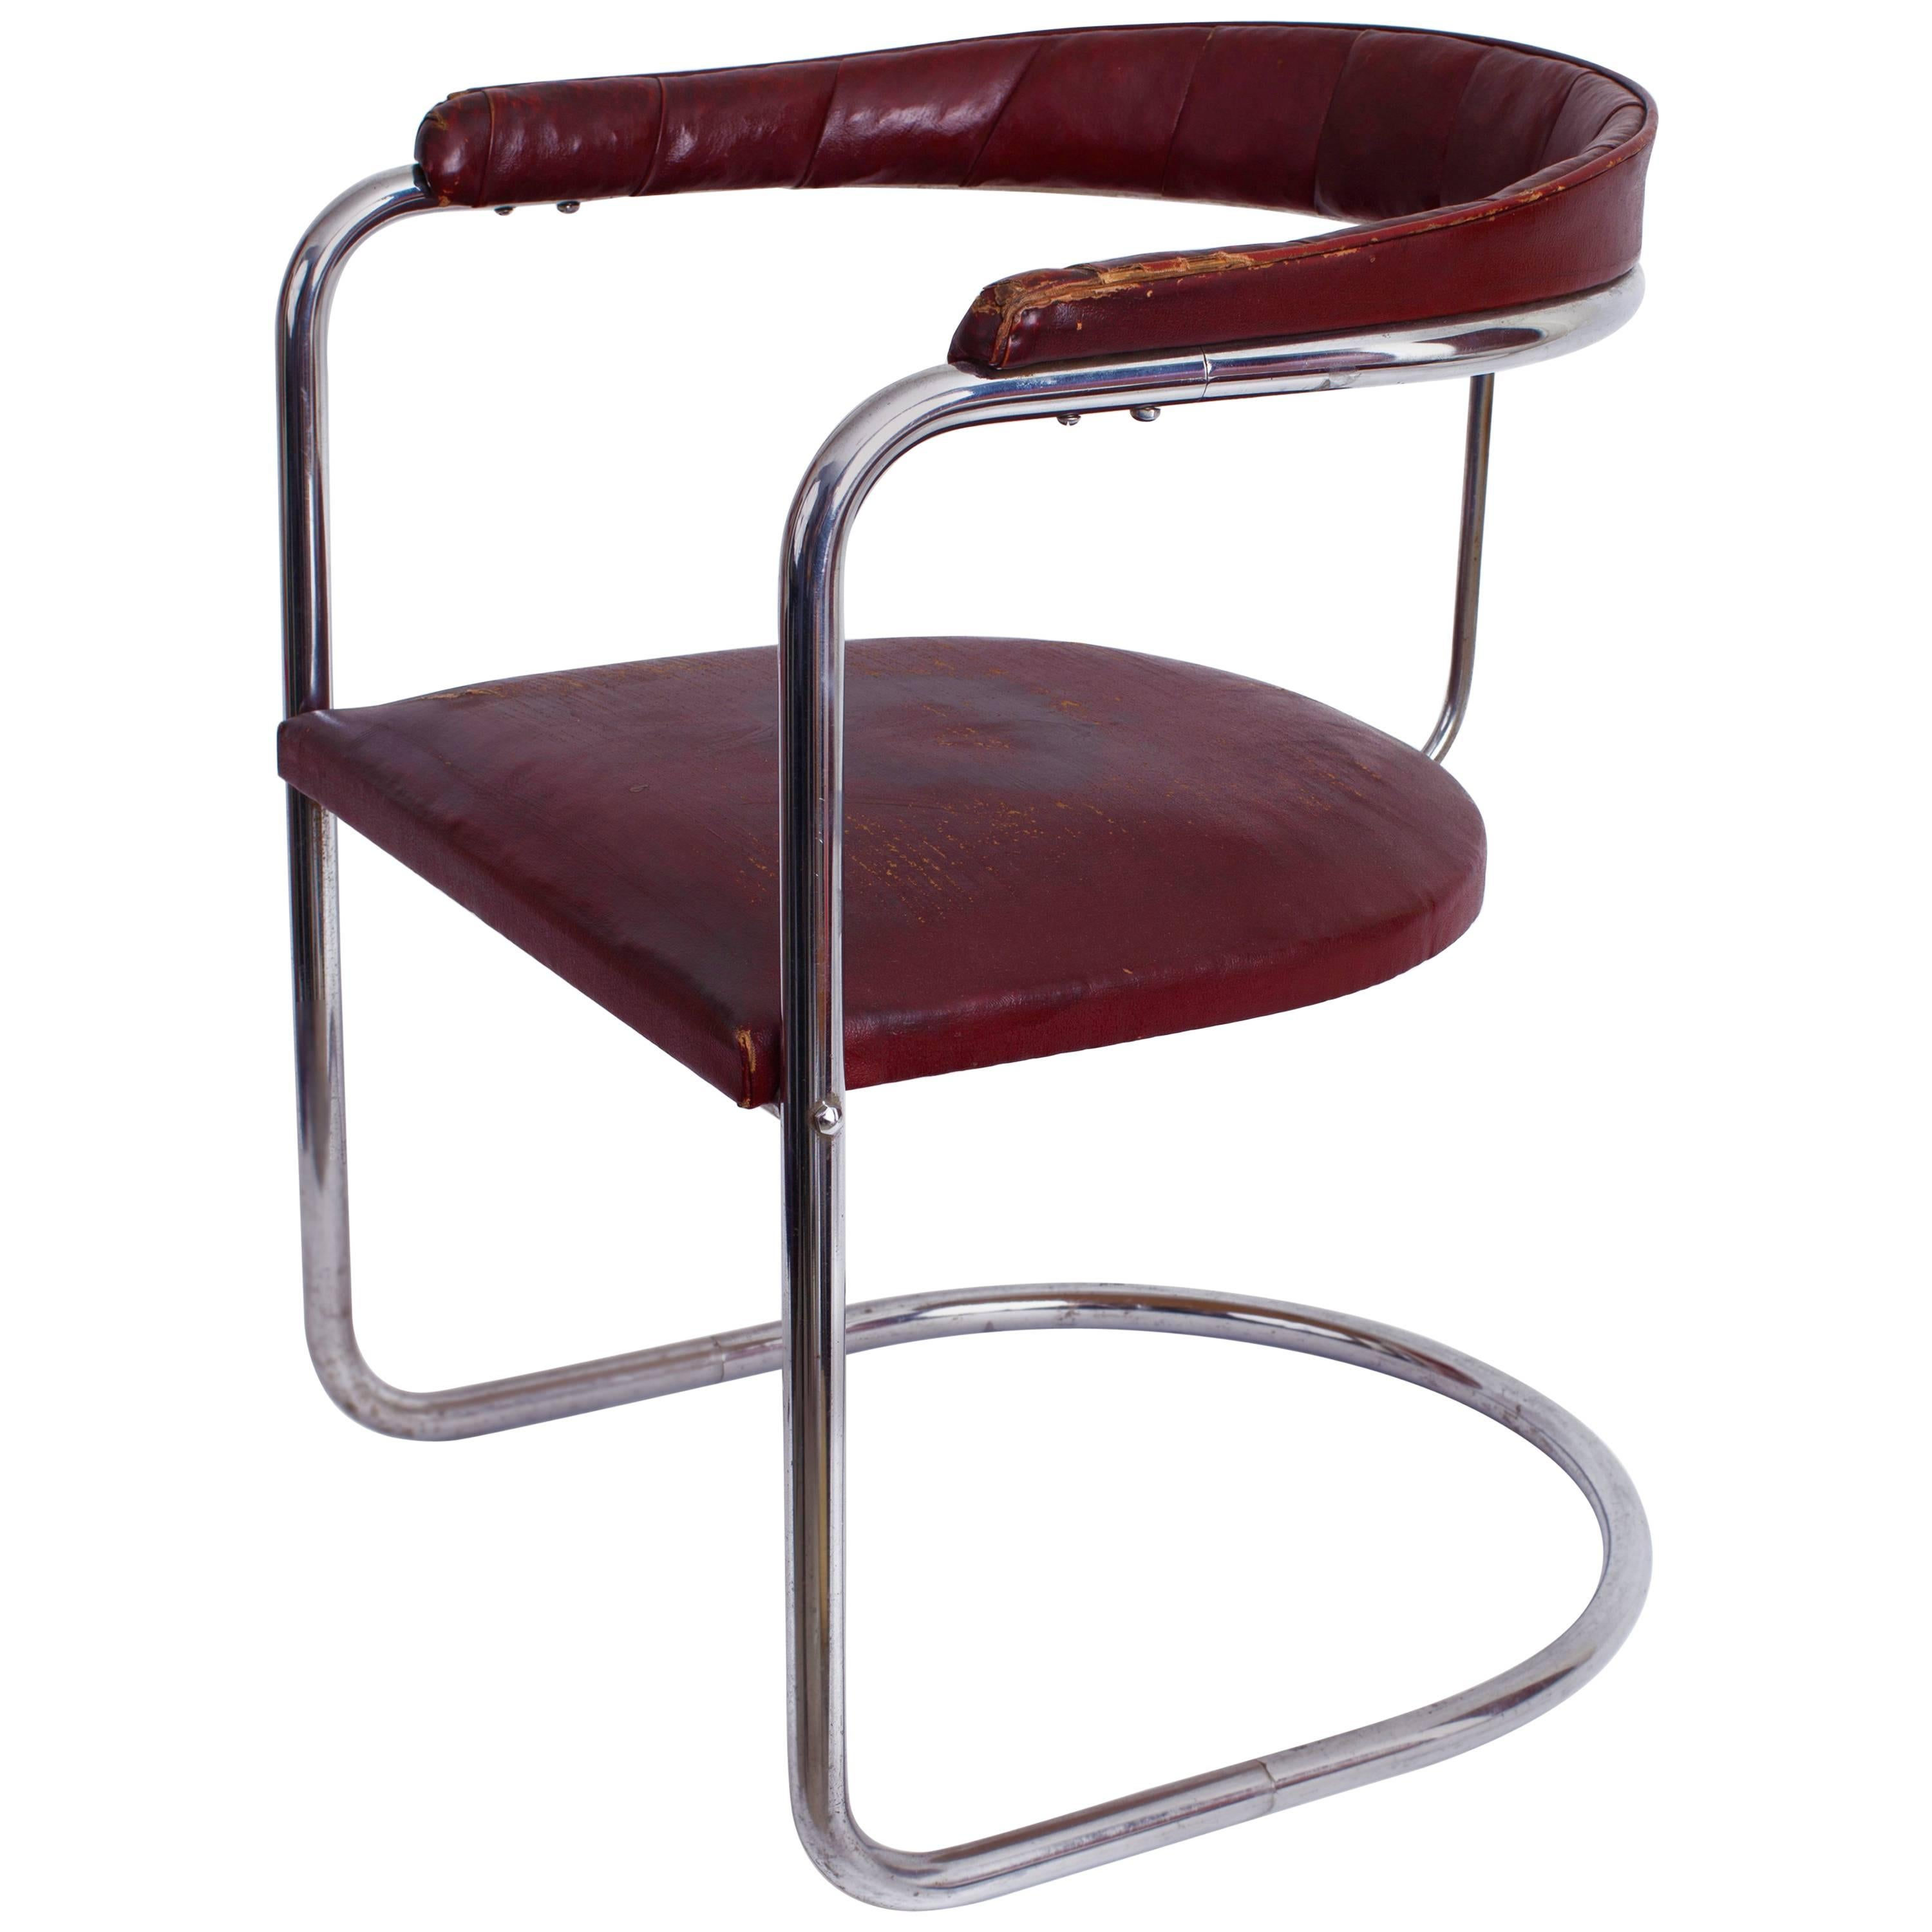 Captivating Early Anton Lorenz For Thonet Cantilevered Steel Tube SS33 Chair, Germany  1930u0027s